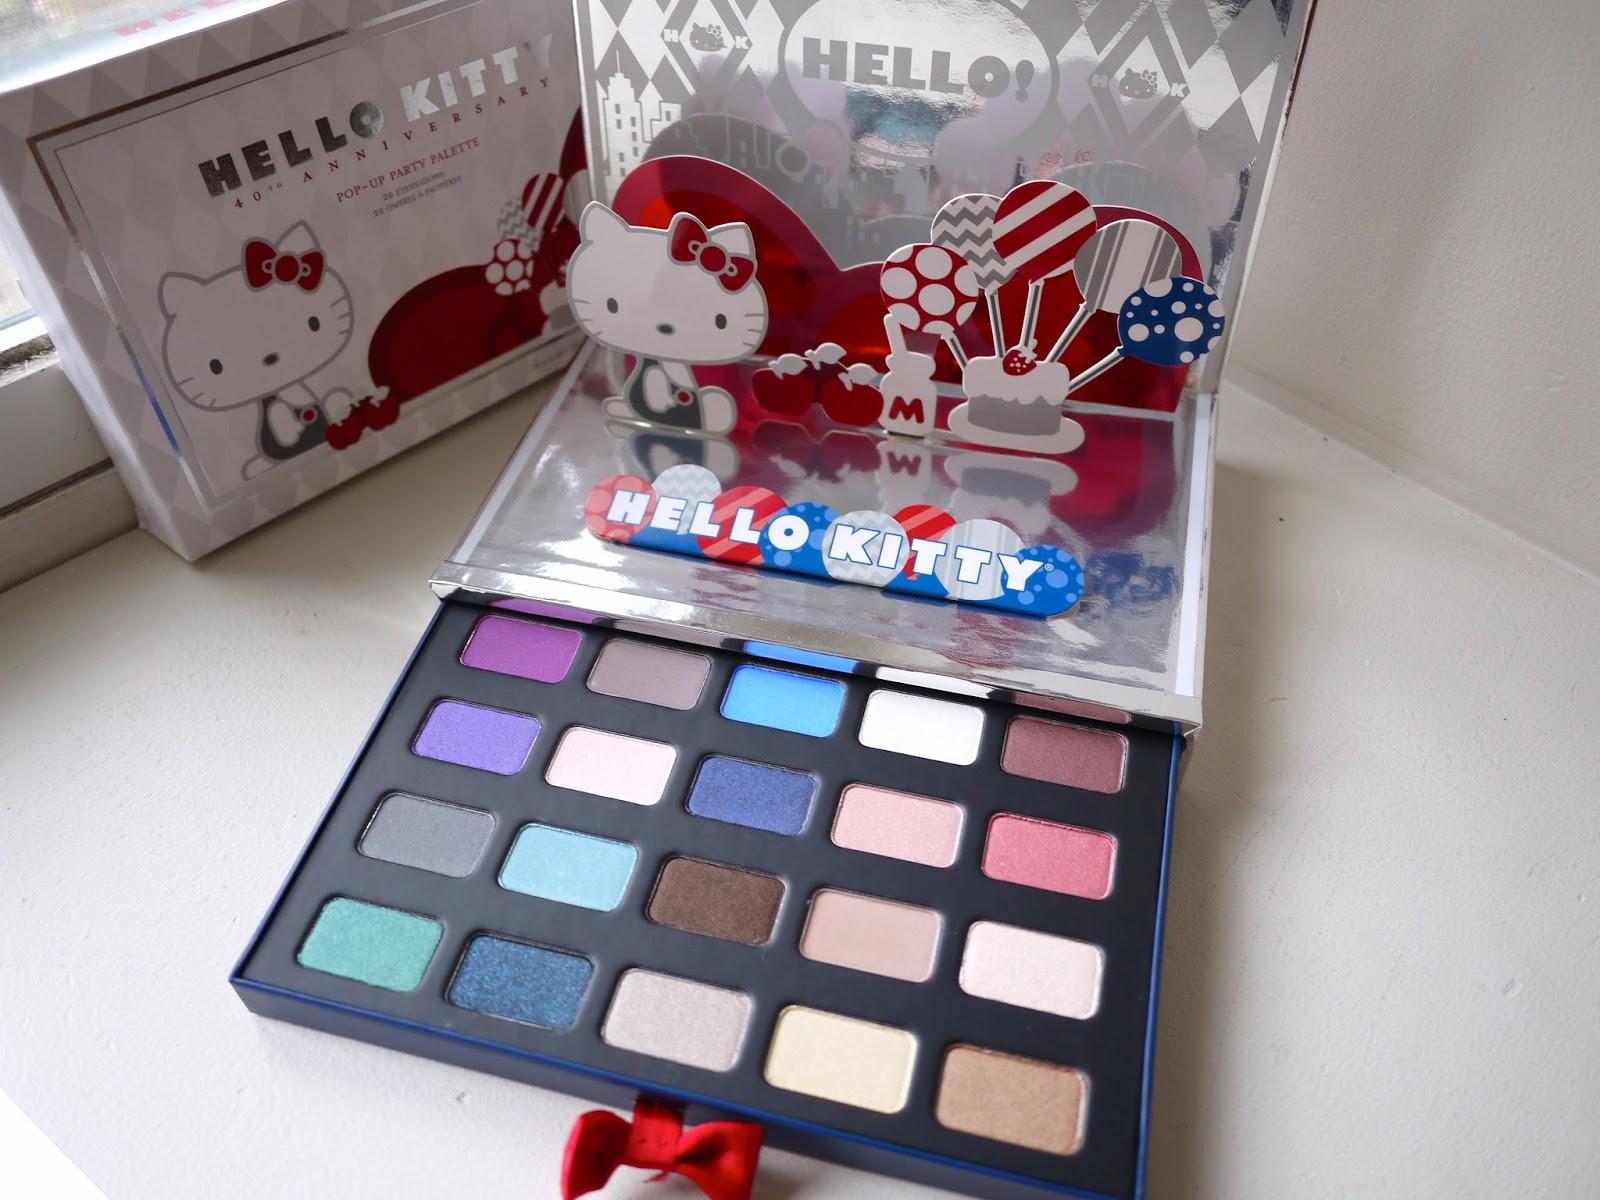 Hello Kitty Pop-Up Party Eyeshadow Palette* swatches and review